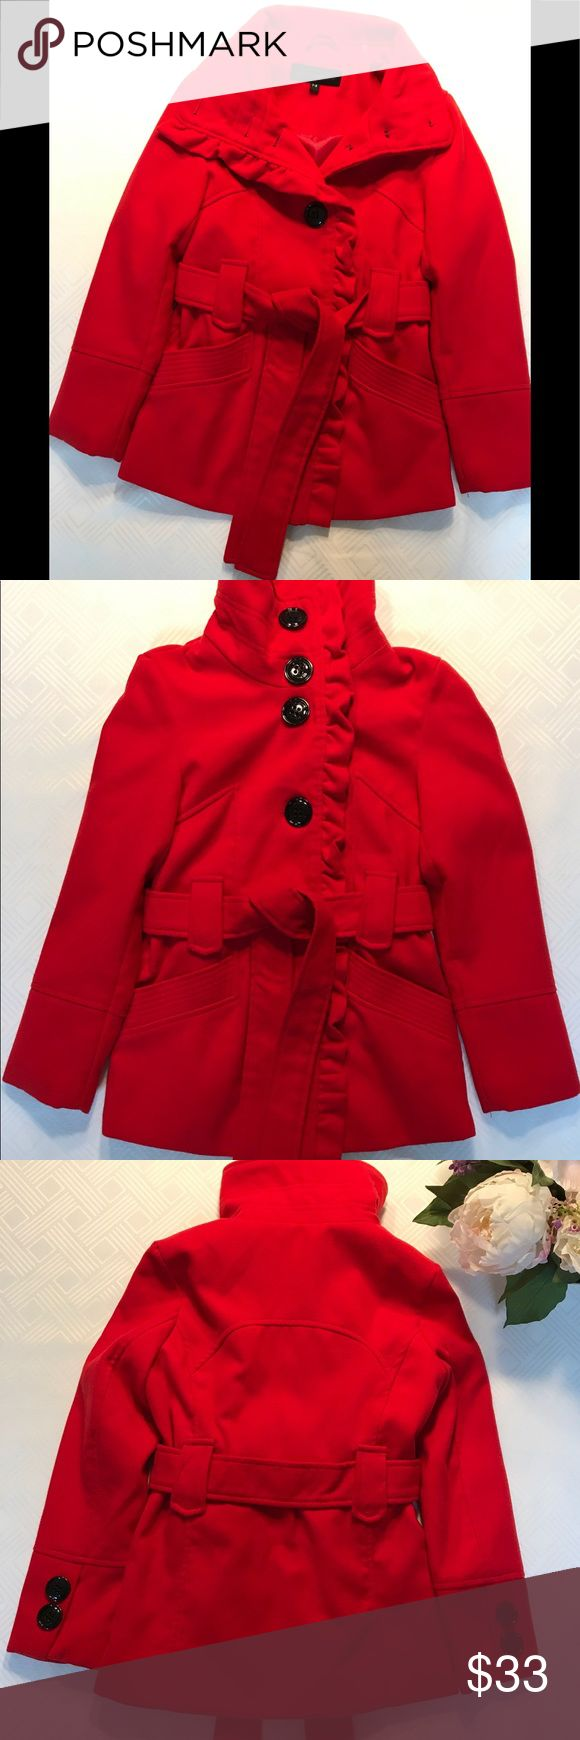 Steve Madden Girl's kids vibrant red size 7/8 coat Beautiful Steve Madden Girl's kids vibrant red size 7/8 coat. 20 inch sleeve length 23 inch length from bottom of the collar to the bottom of the coat. In excellent condition! :) Fully lined. Ribbed design on the top of the pockets. Detachable belt. Steve Madden Jackets & Coats